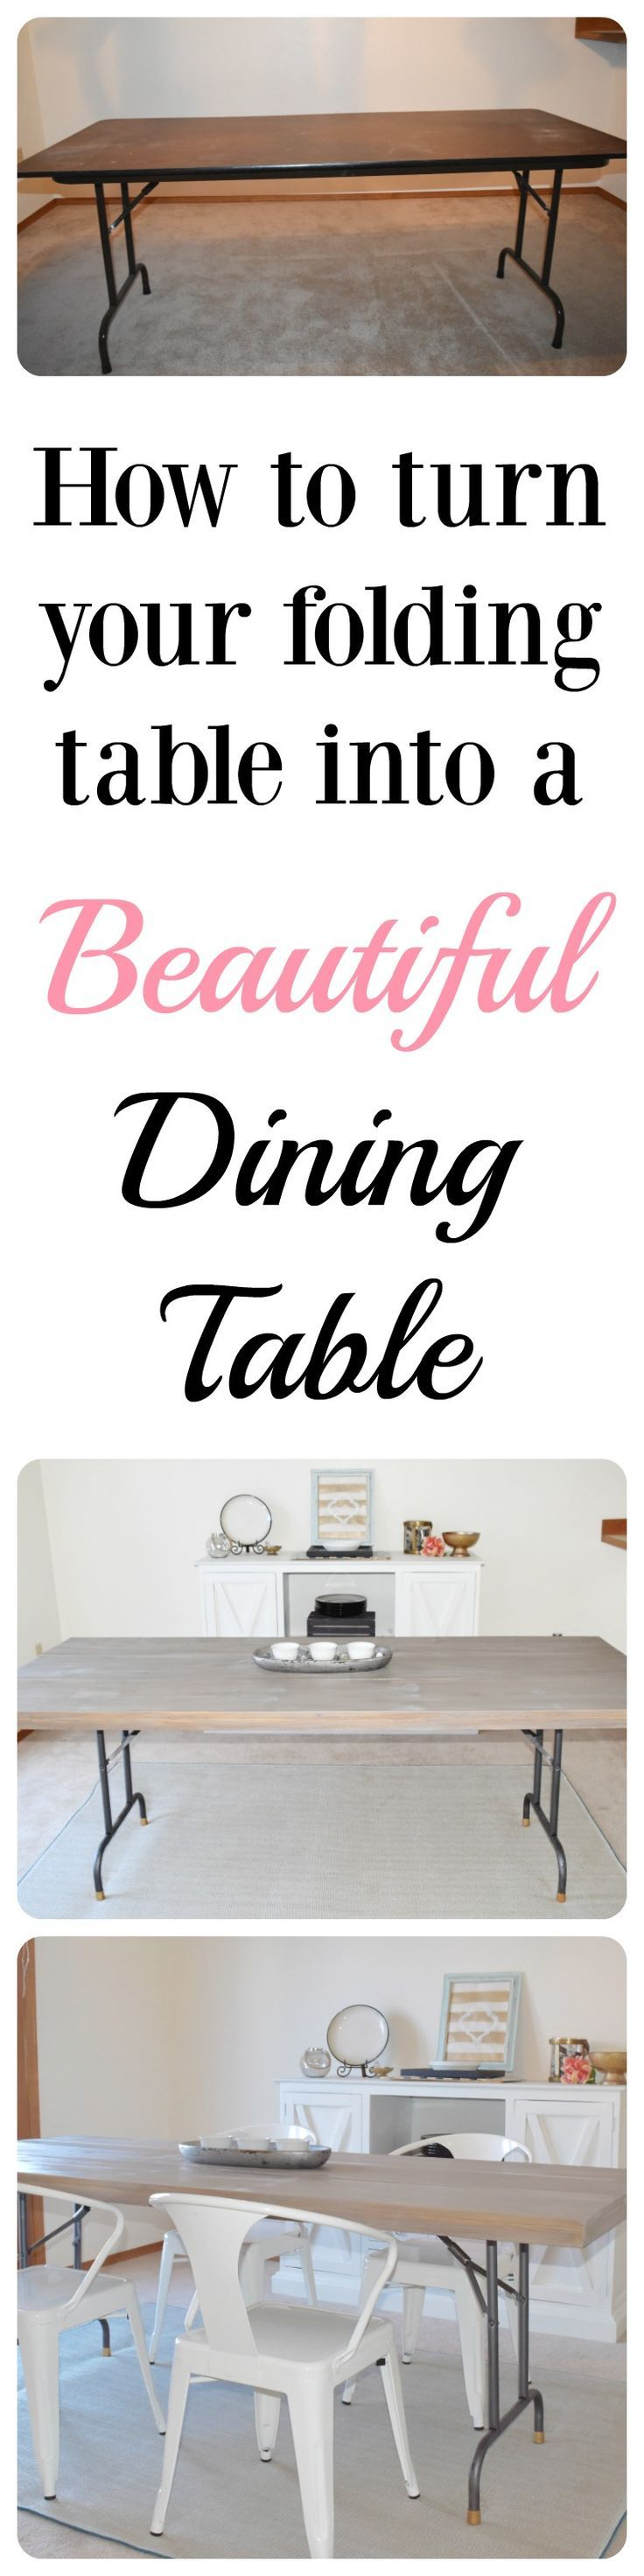 How to turn a folding table into a designer knock-off dining table. How to use stain. How to build a table. Farmhouse. Rustic Industrial.